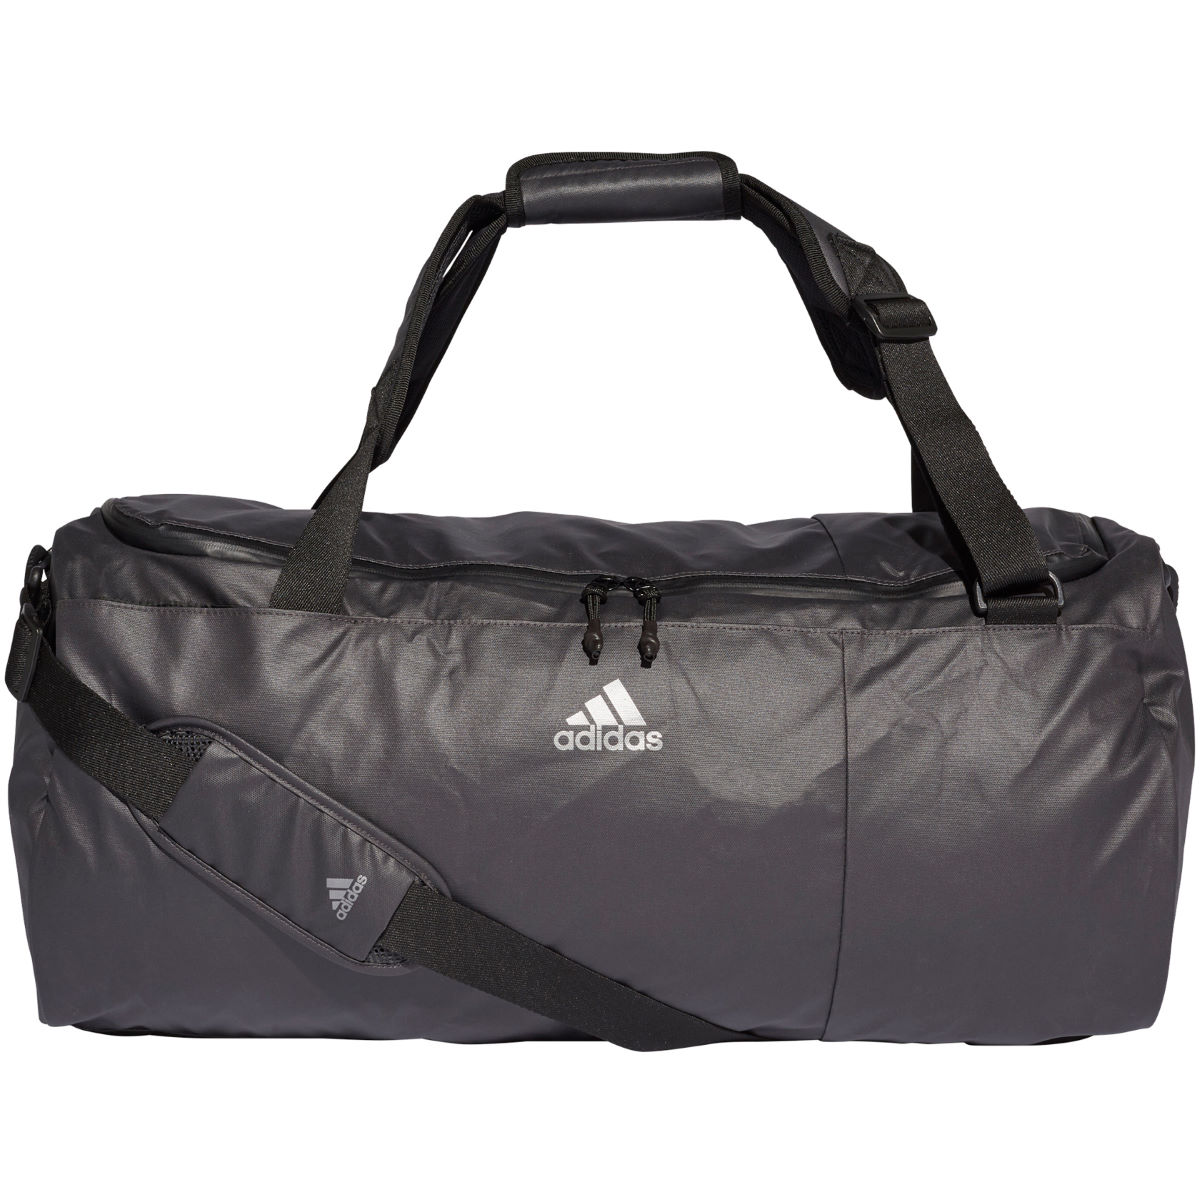 adidas Training Convertible Top Team Bag - Bolsas de viaje